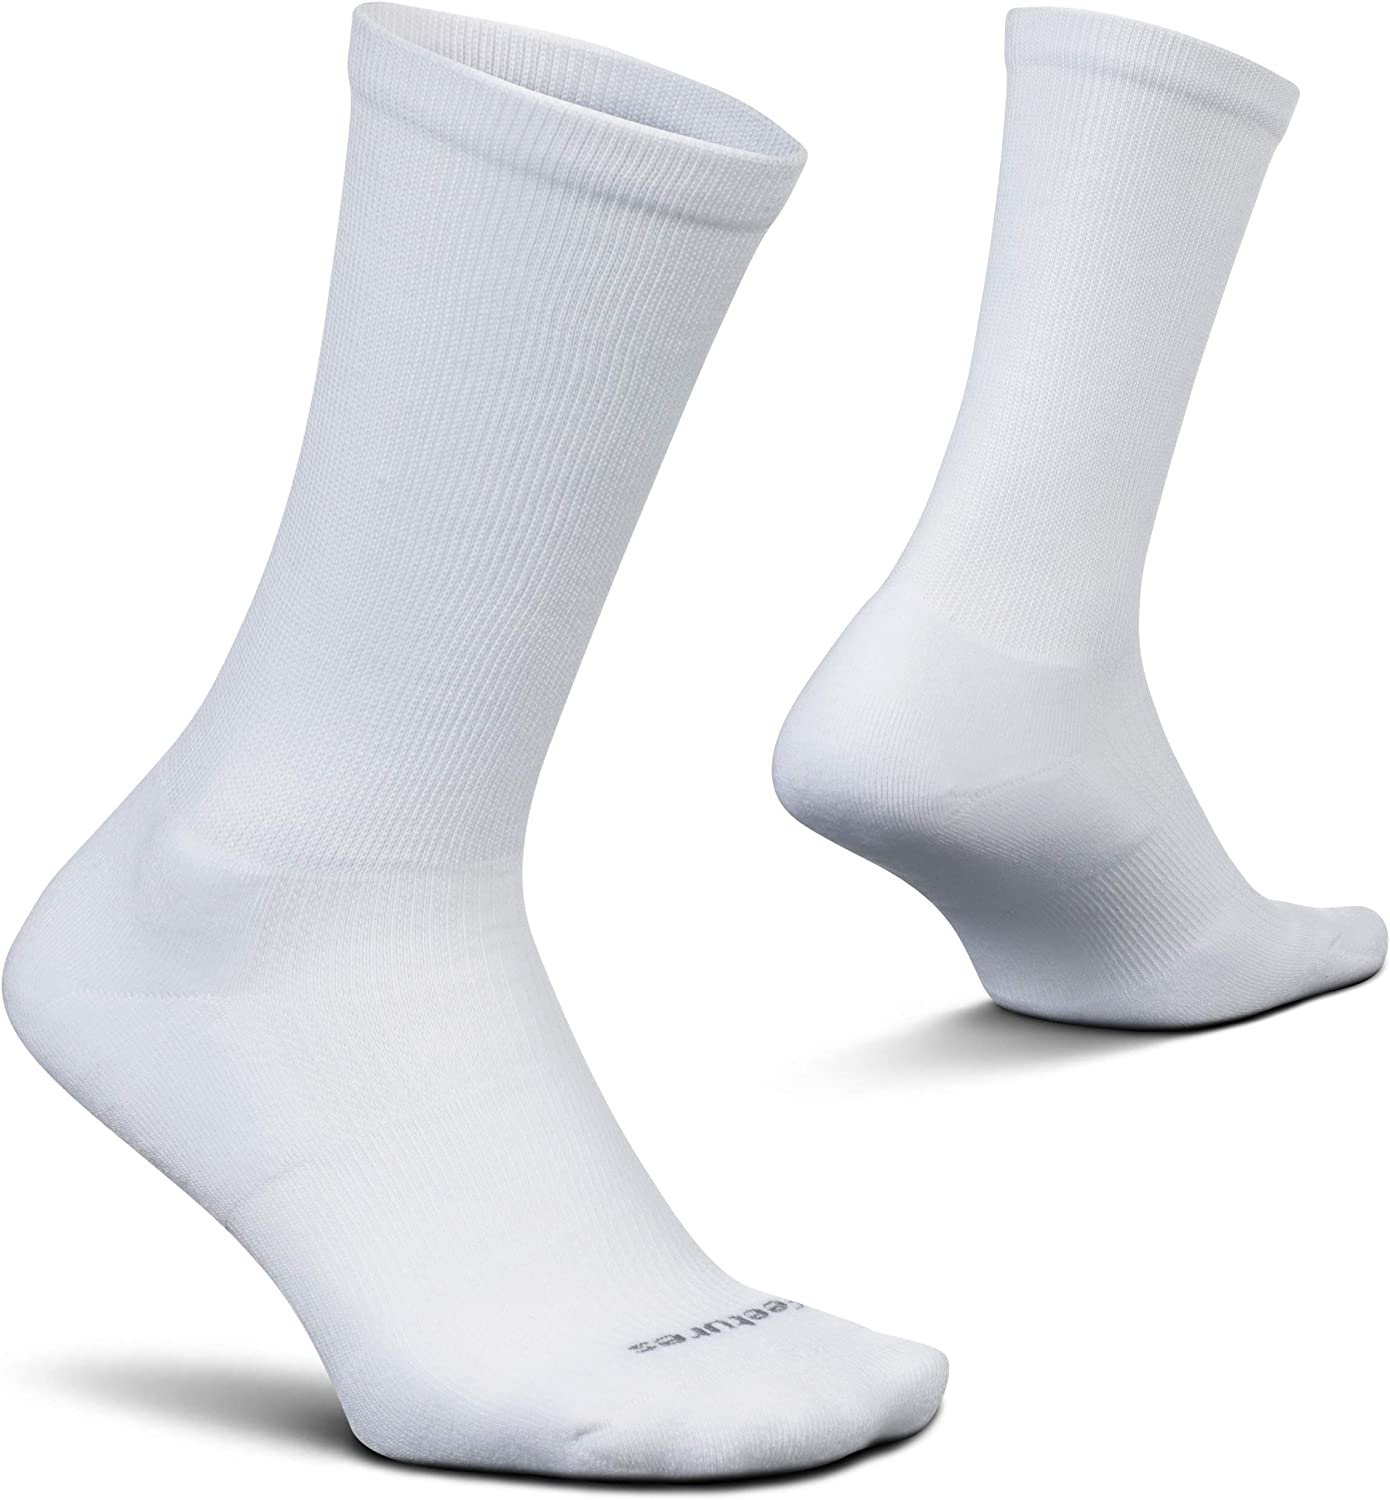 Feetures Therapeutic Cushion Crew- Diabetic Compression Socks for Men & Women, Moisture Wicking